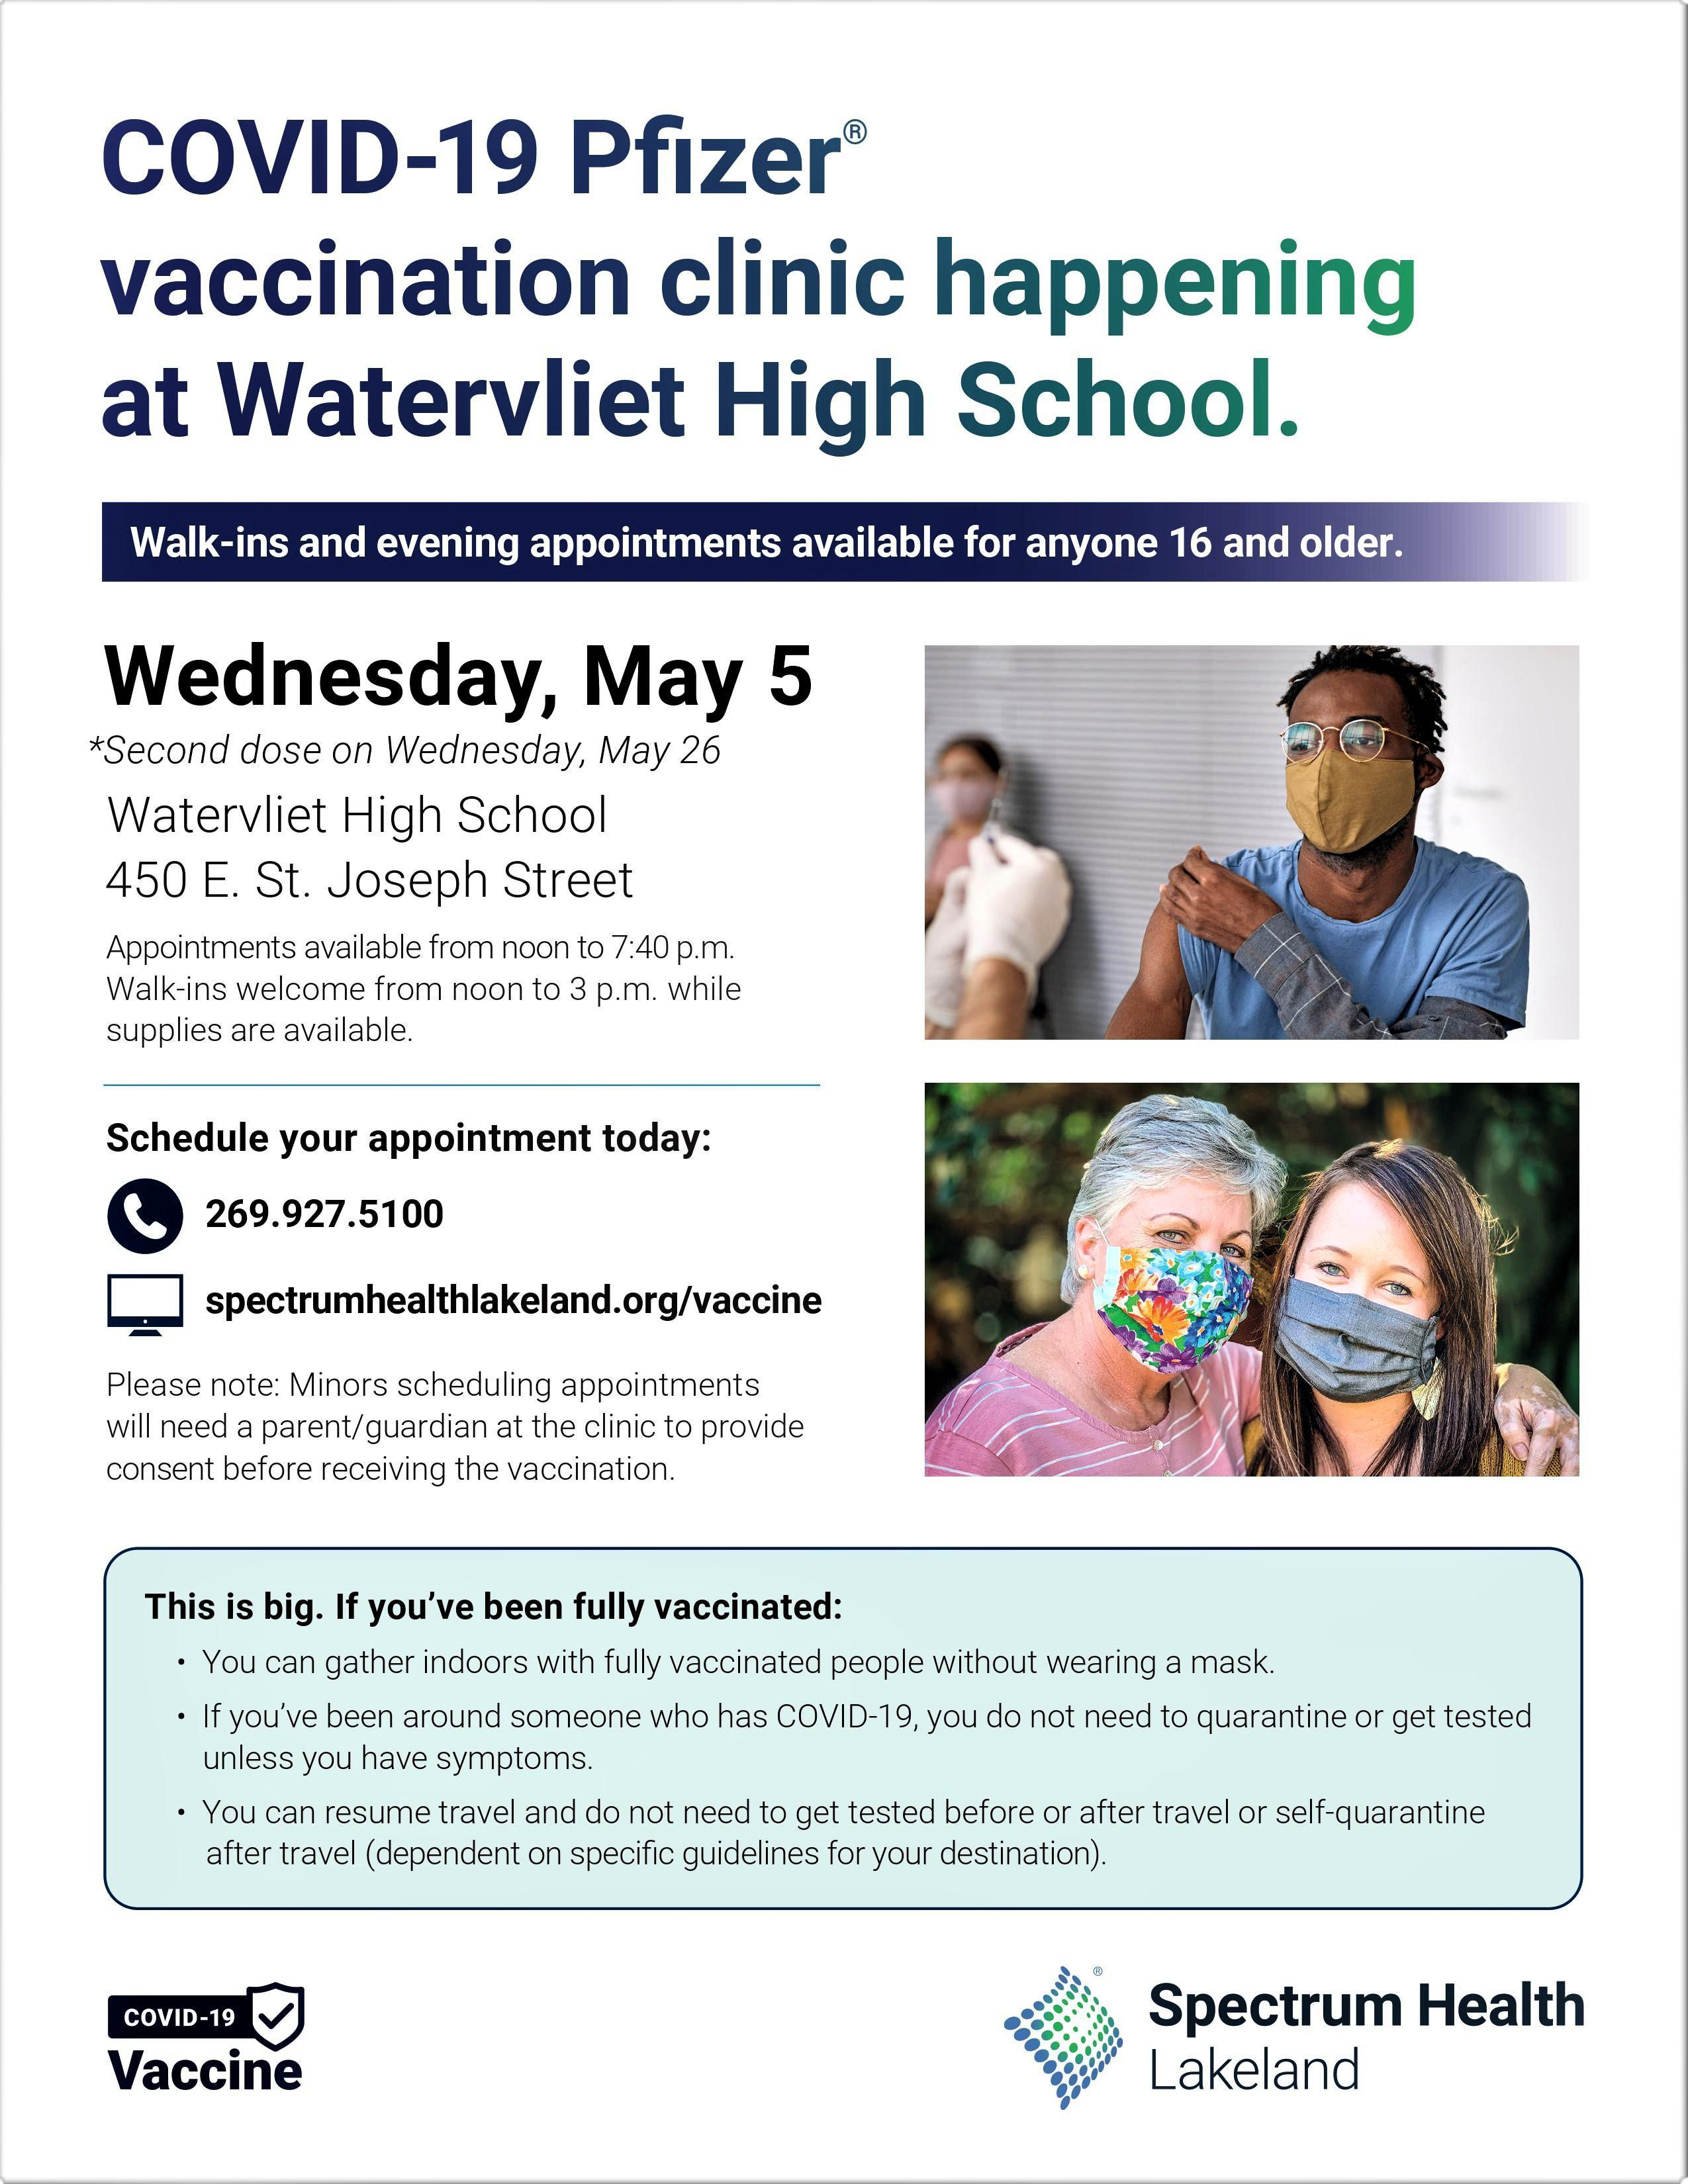 Flier for Covid-19 Vaccine clinic at Watervliet High School on May 5, 2021